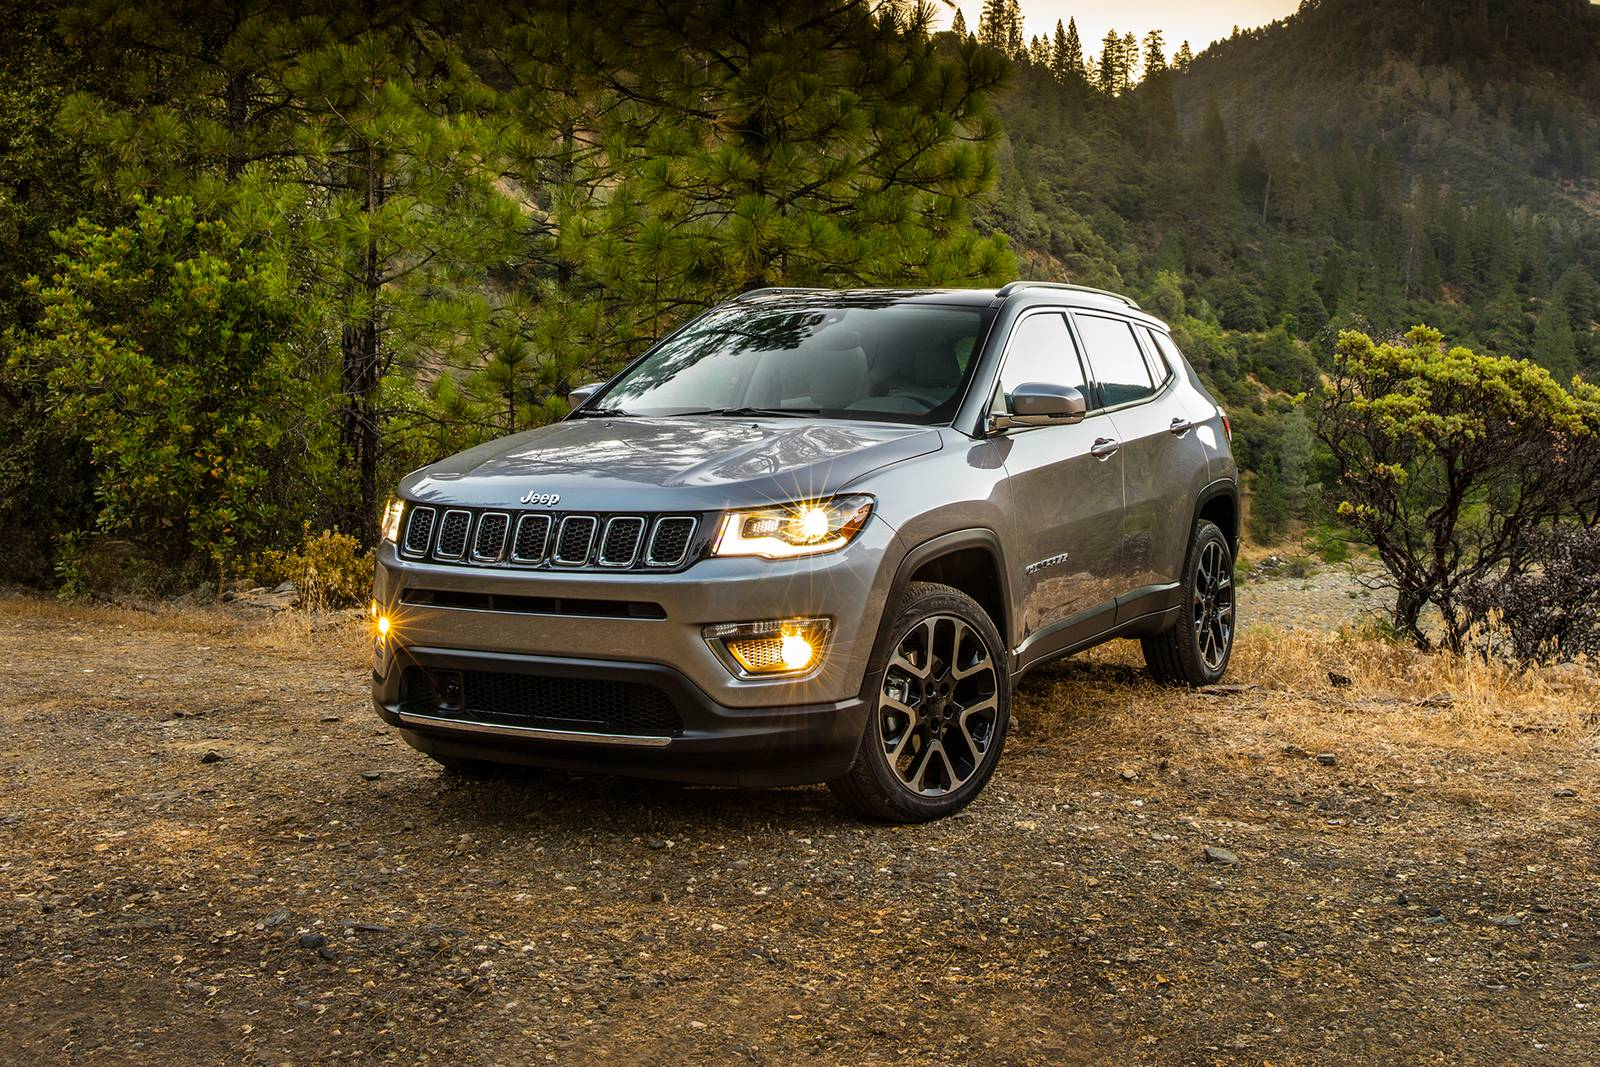 Expected Front View Of Jeep Compass 2021